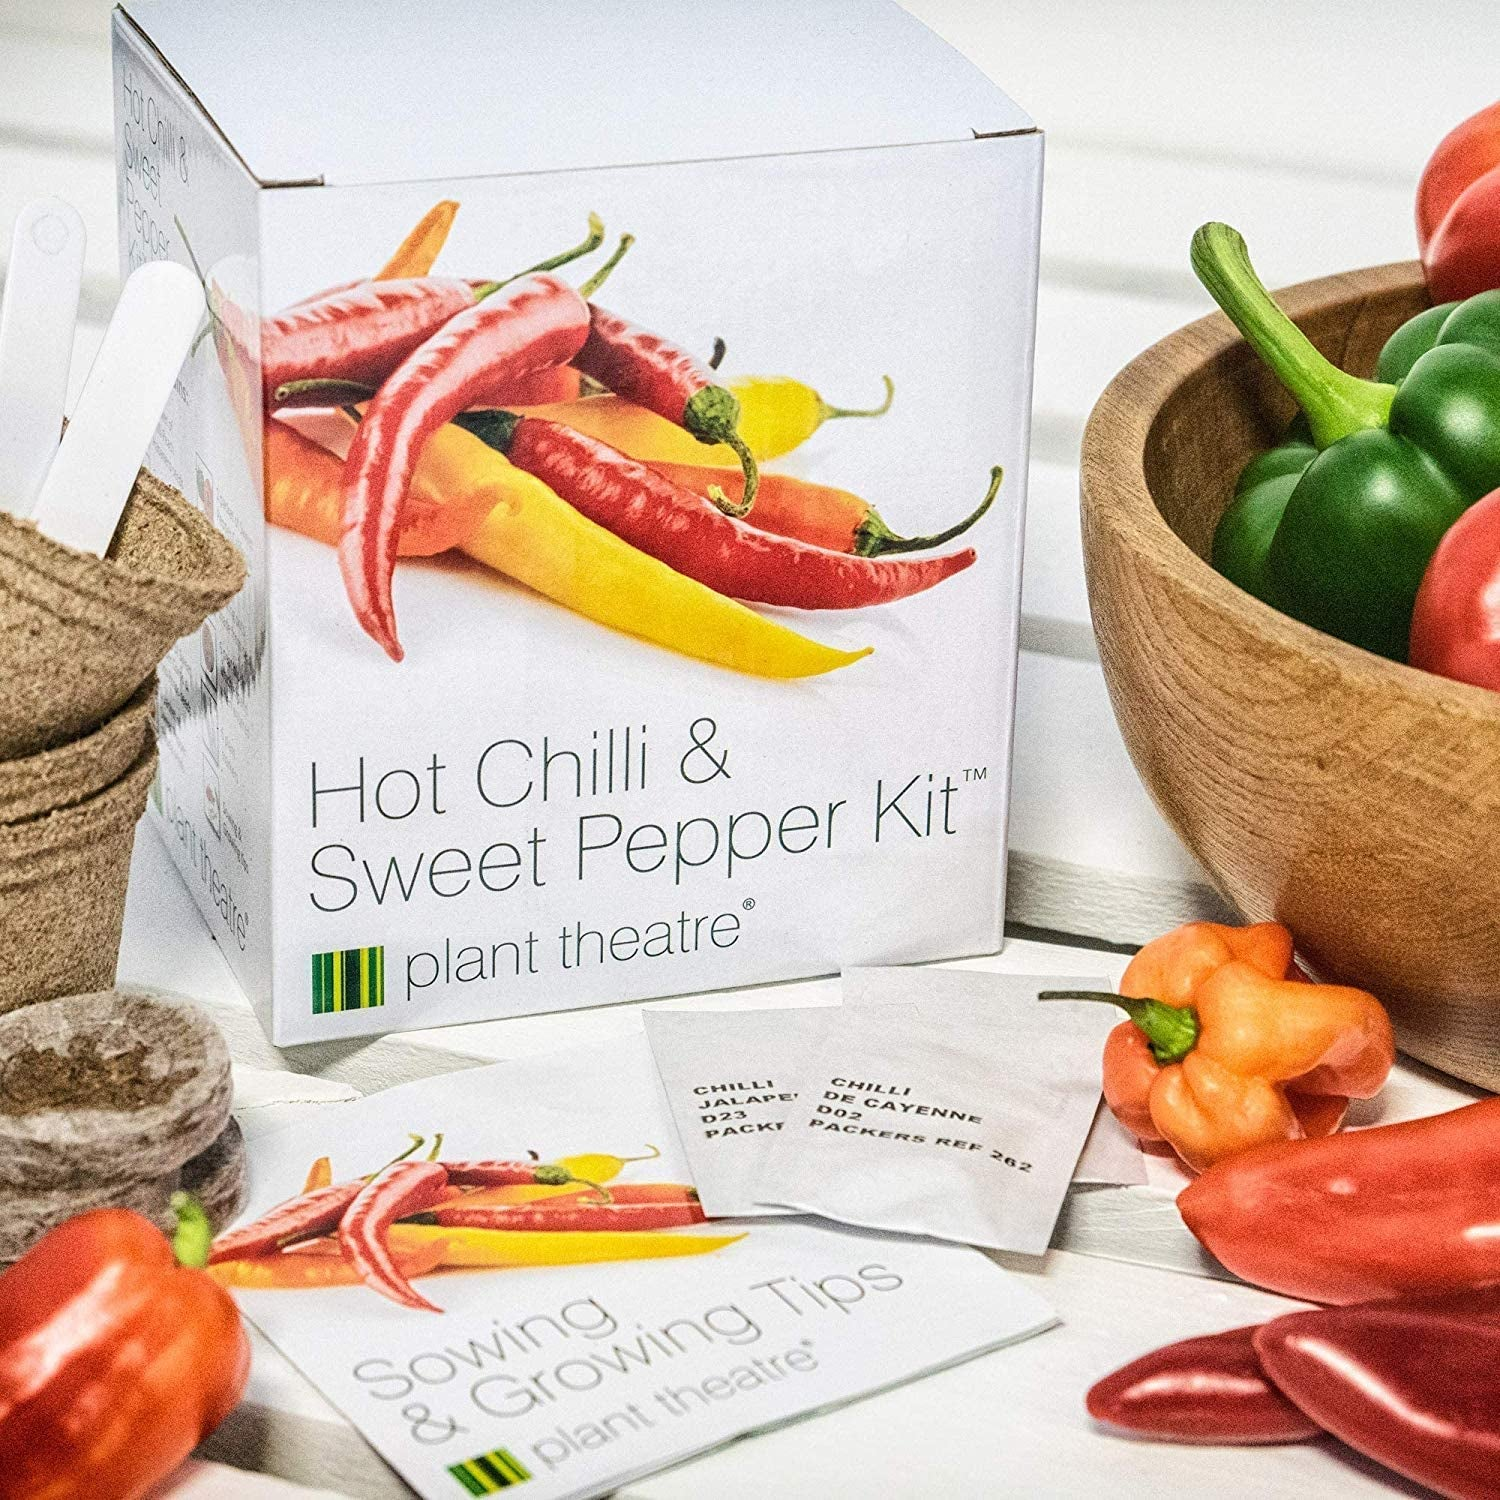 Plant Theatre's chili and pepper kit